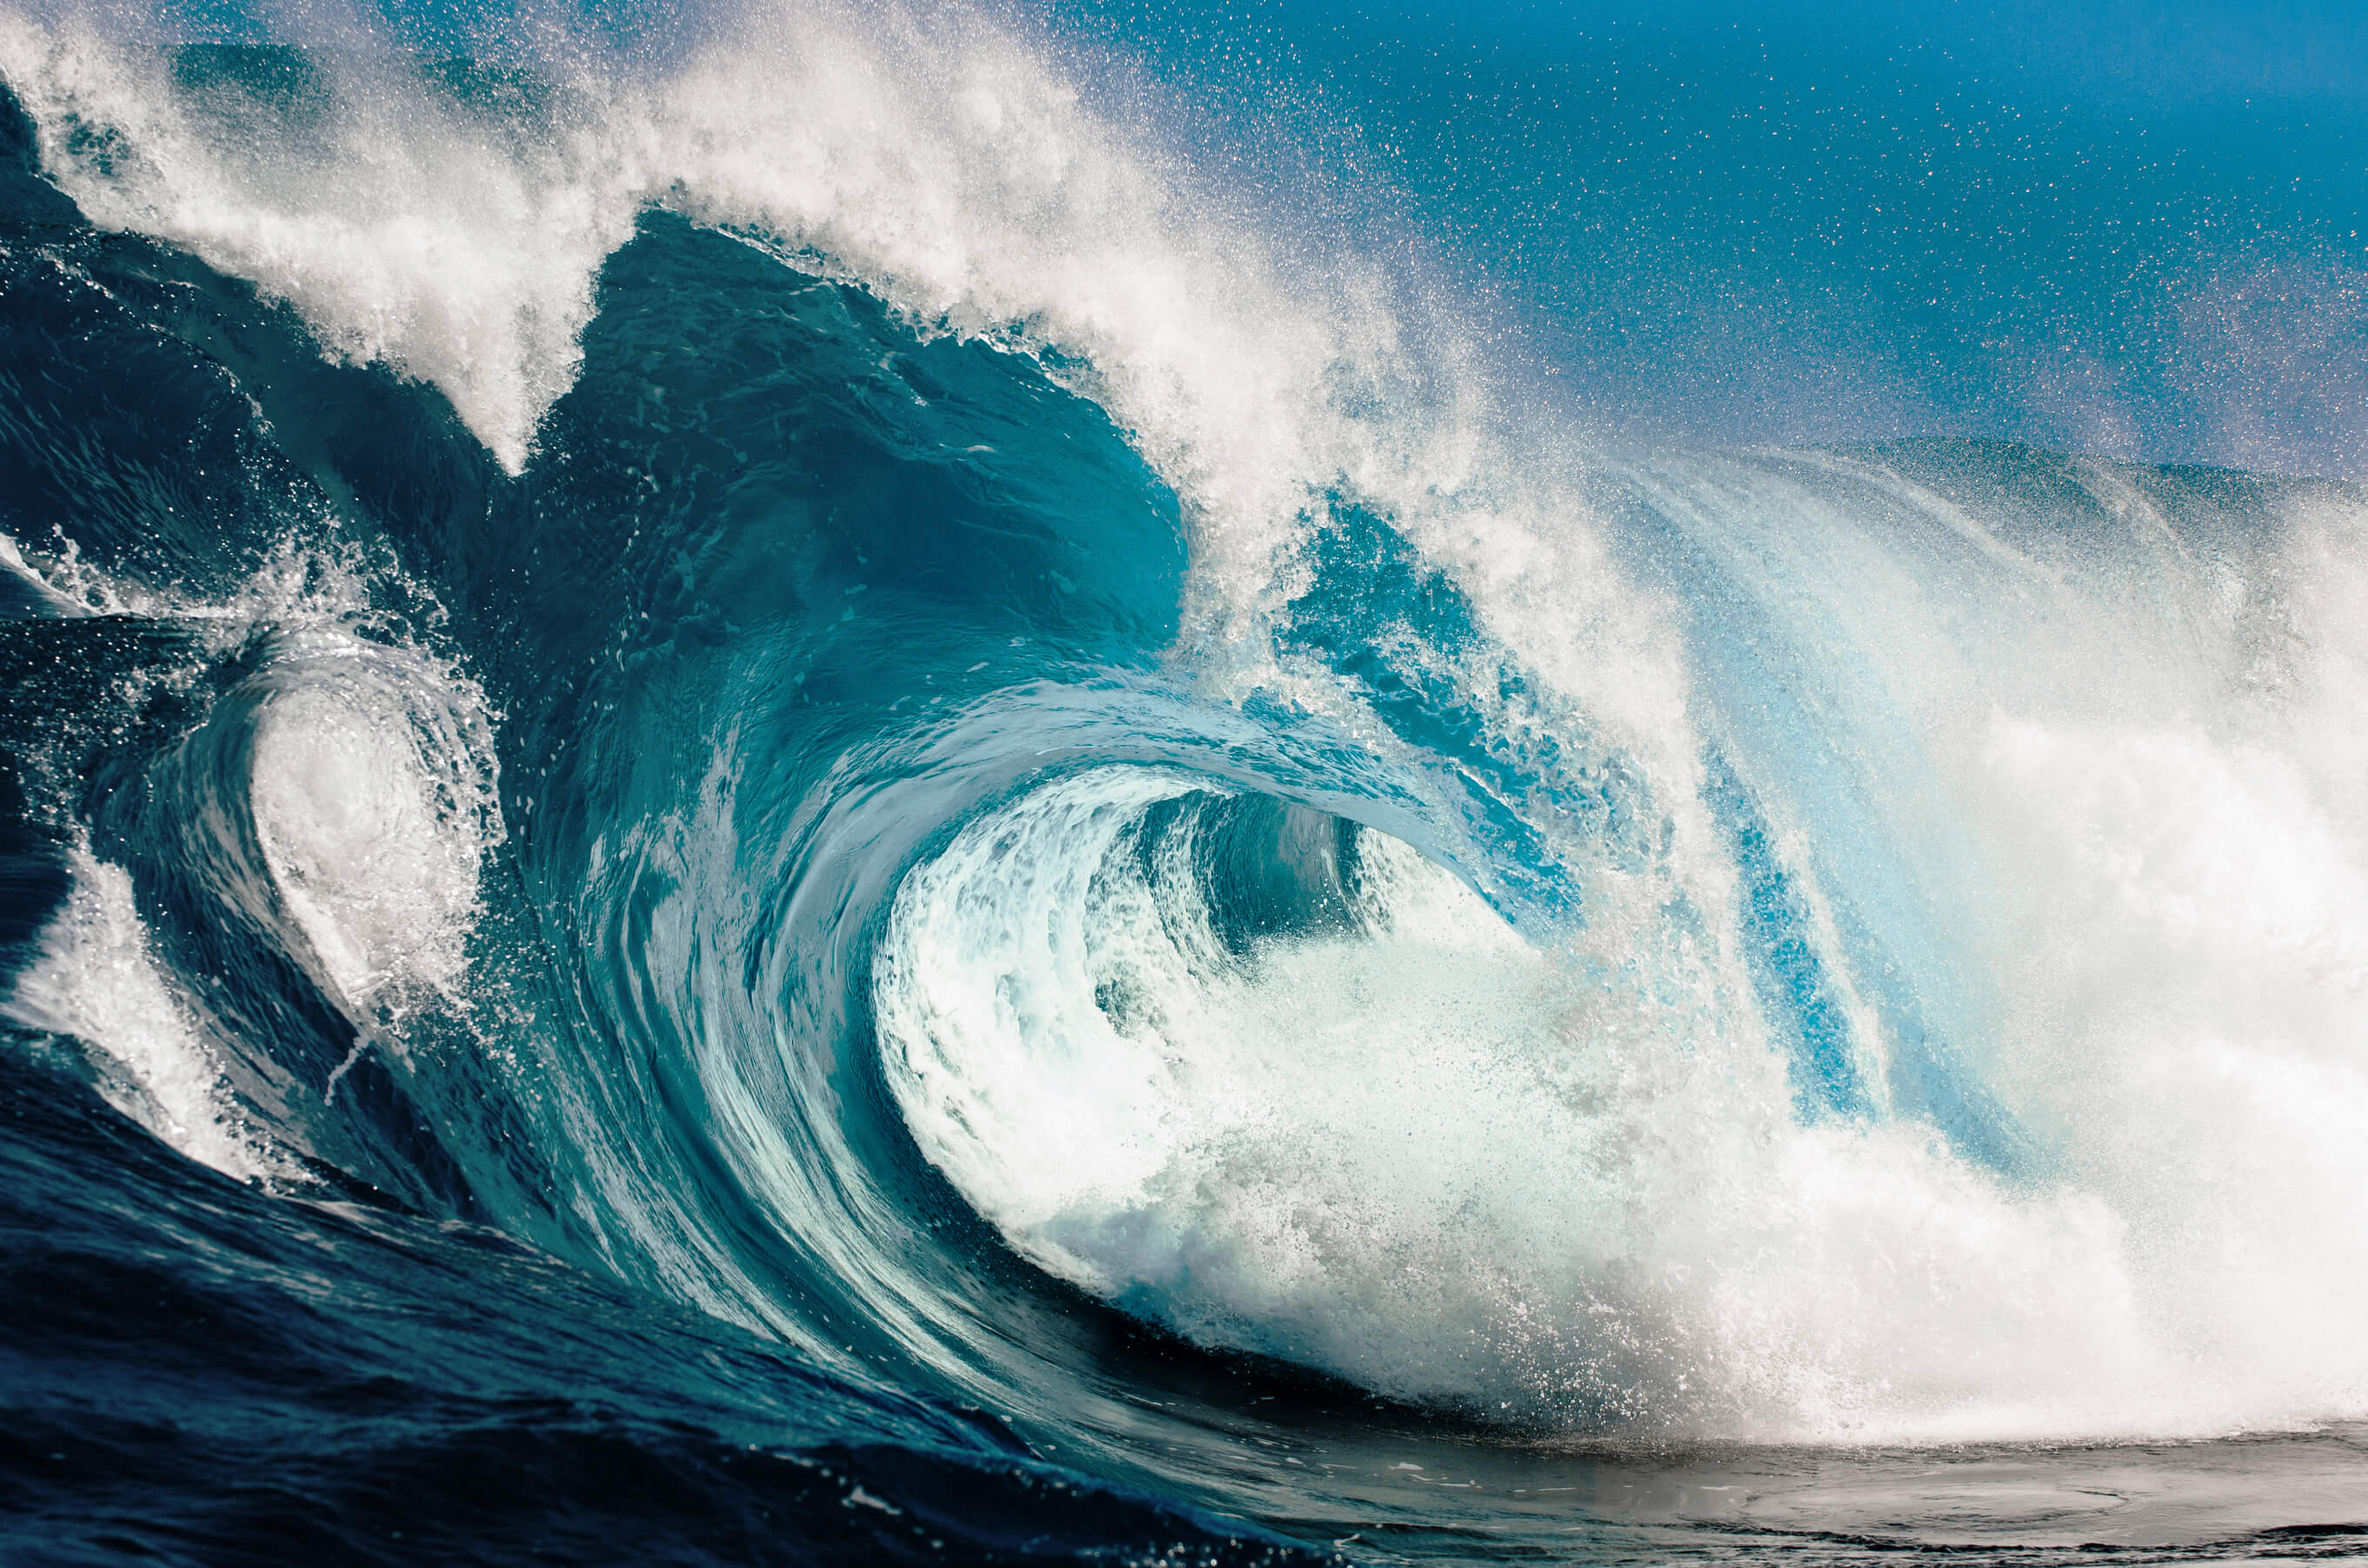 Looking in to the eye of a huge blue wave.